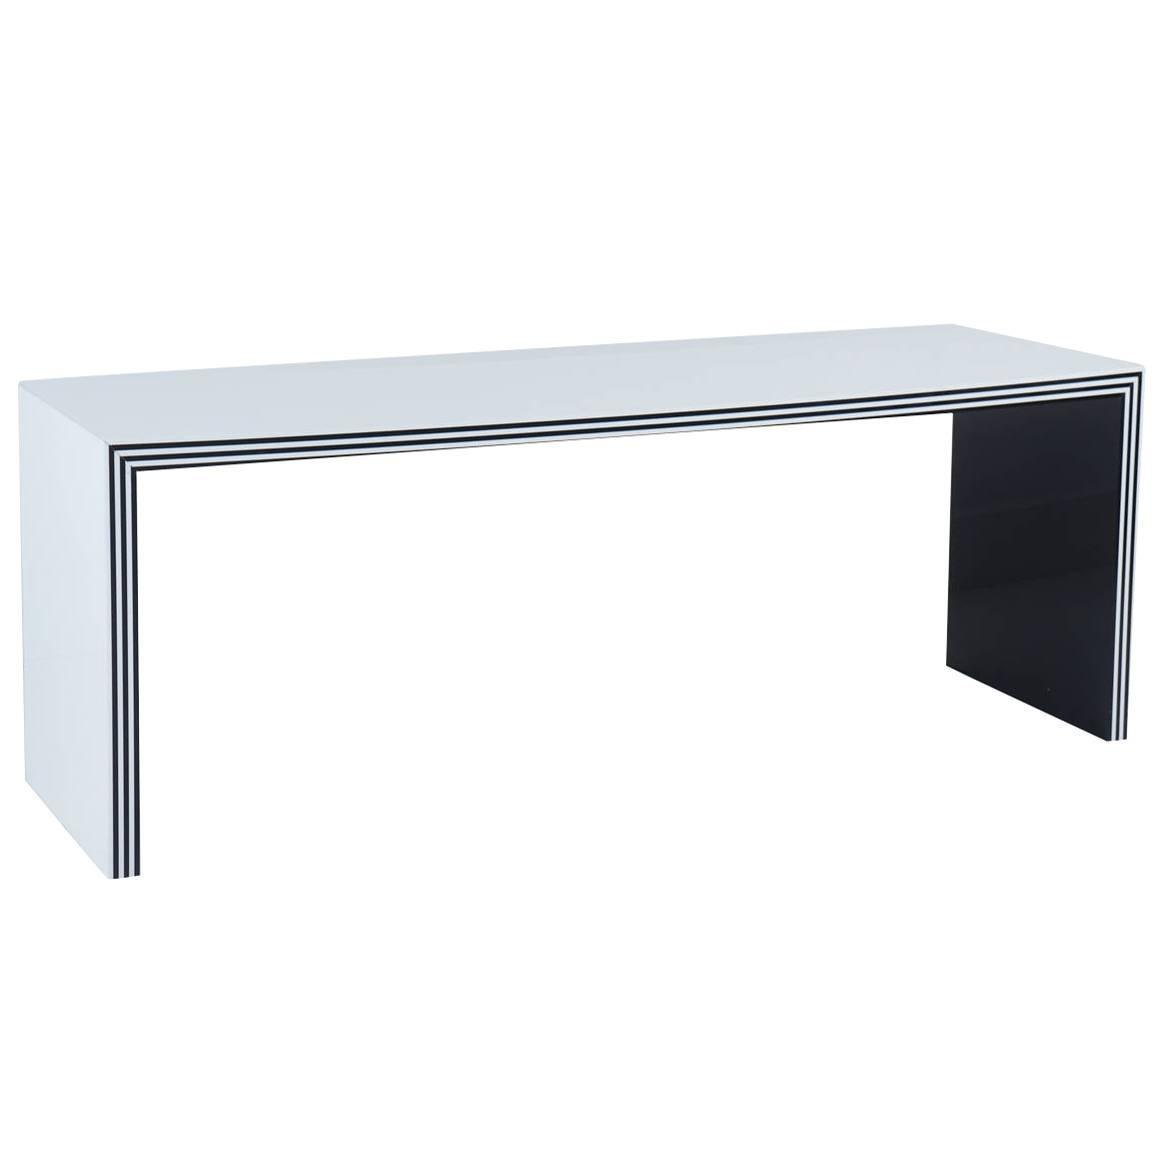 Custom Black And White Acrylic Bench At 1stdibs